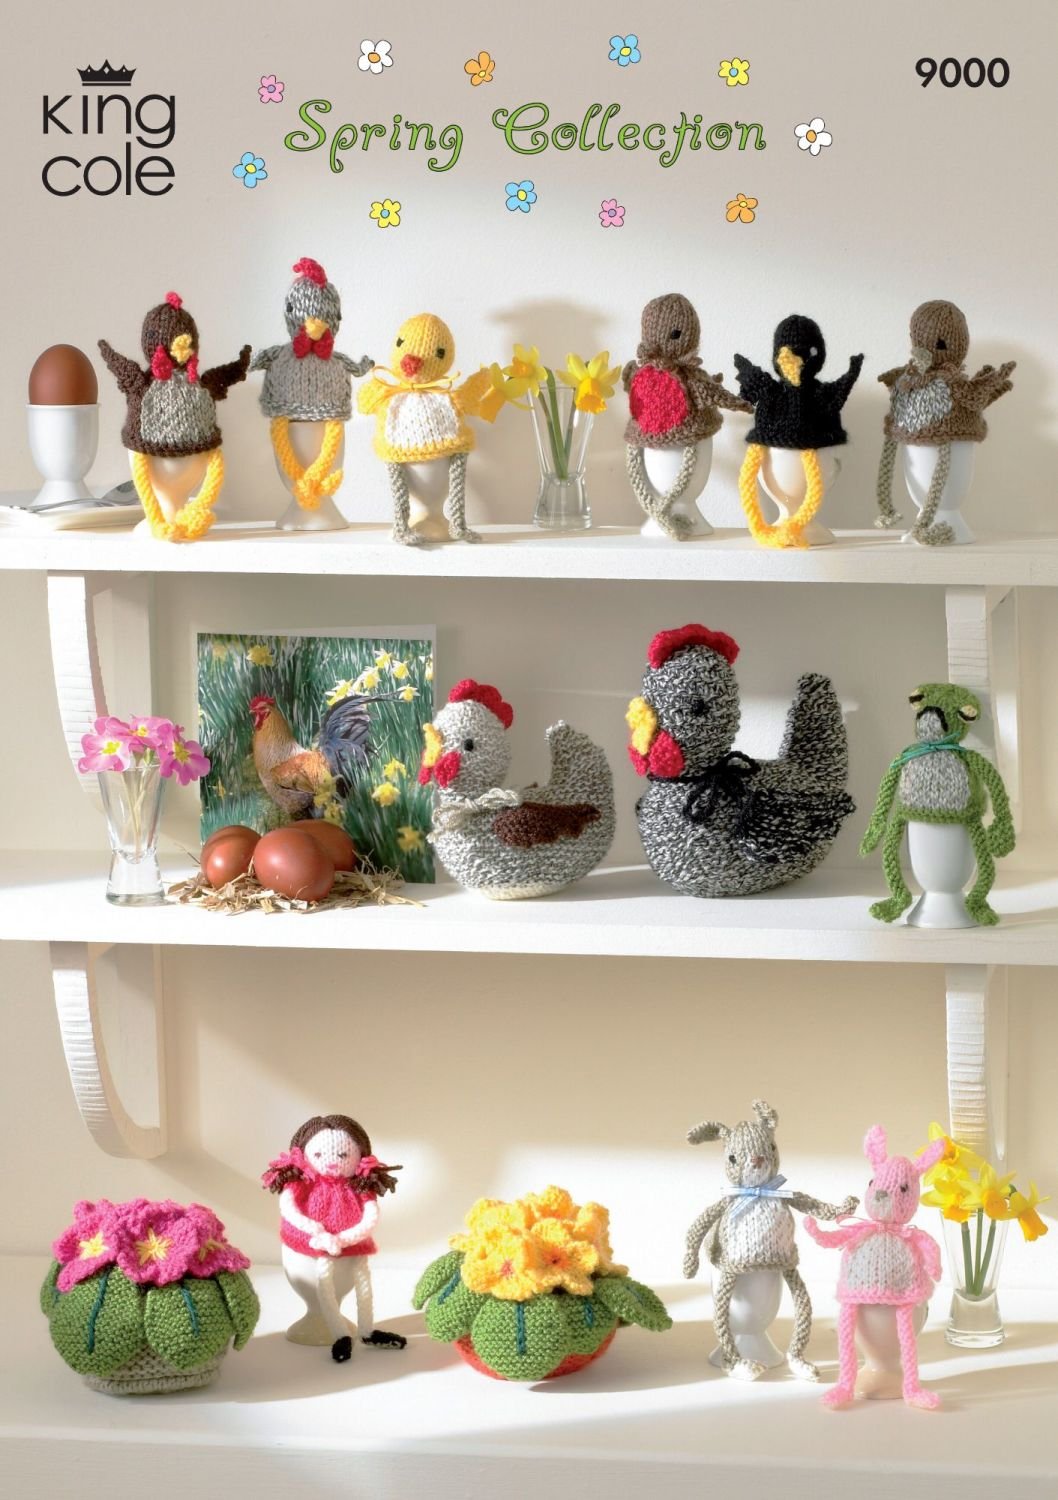 9000 Knitting Pattern - Spring Collection (Easter)